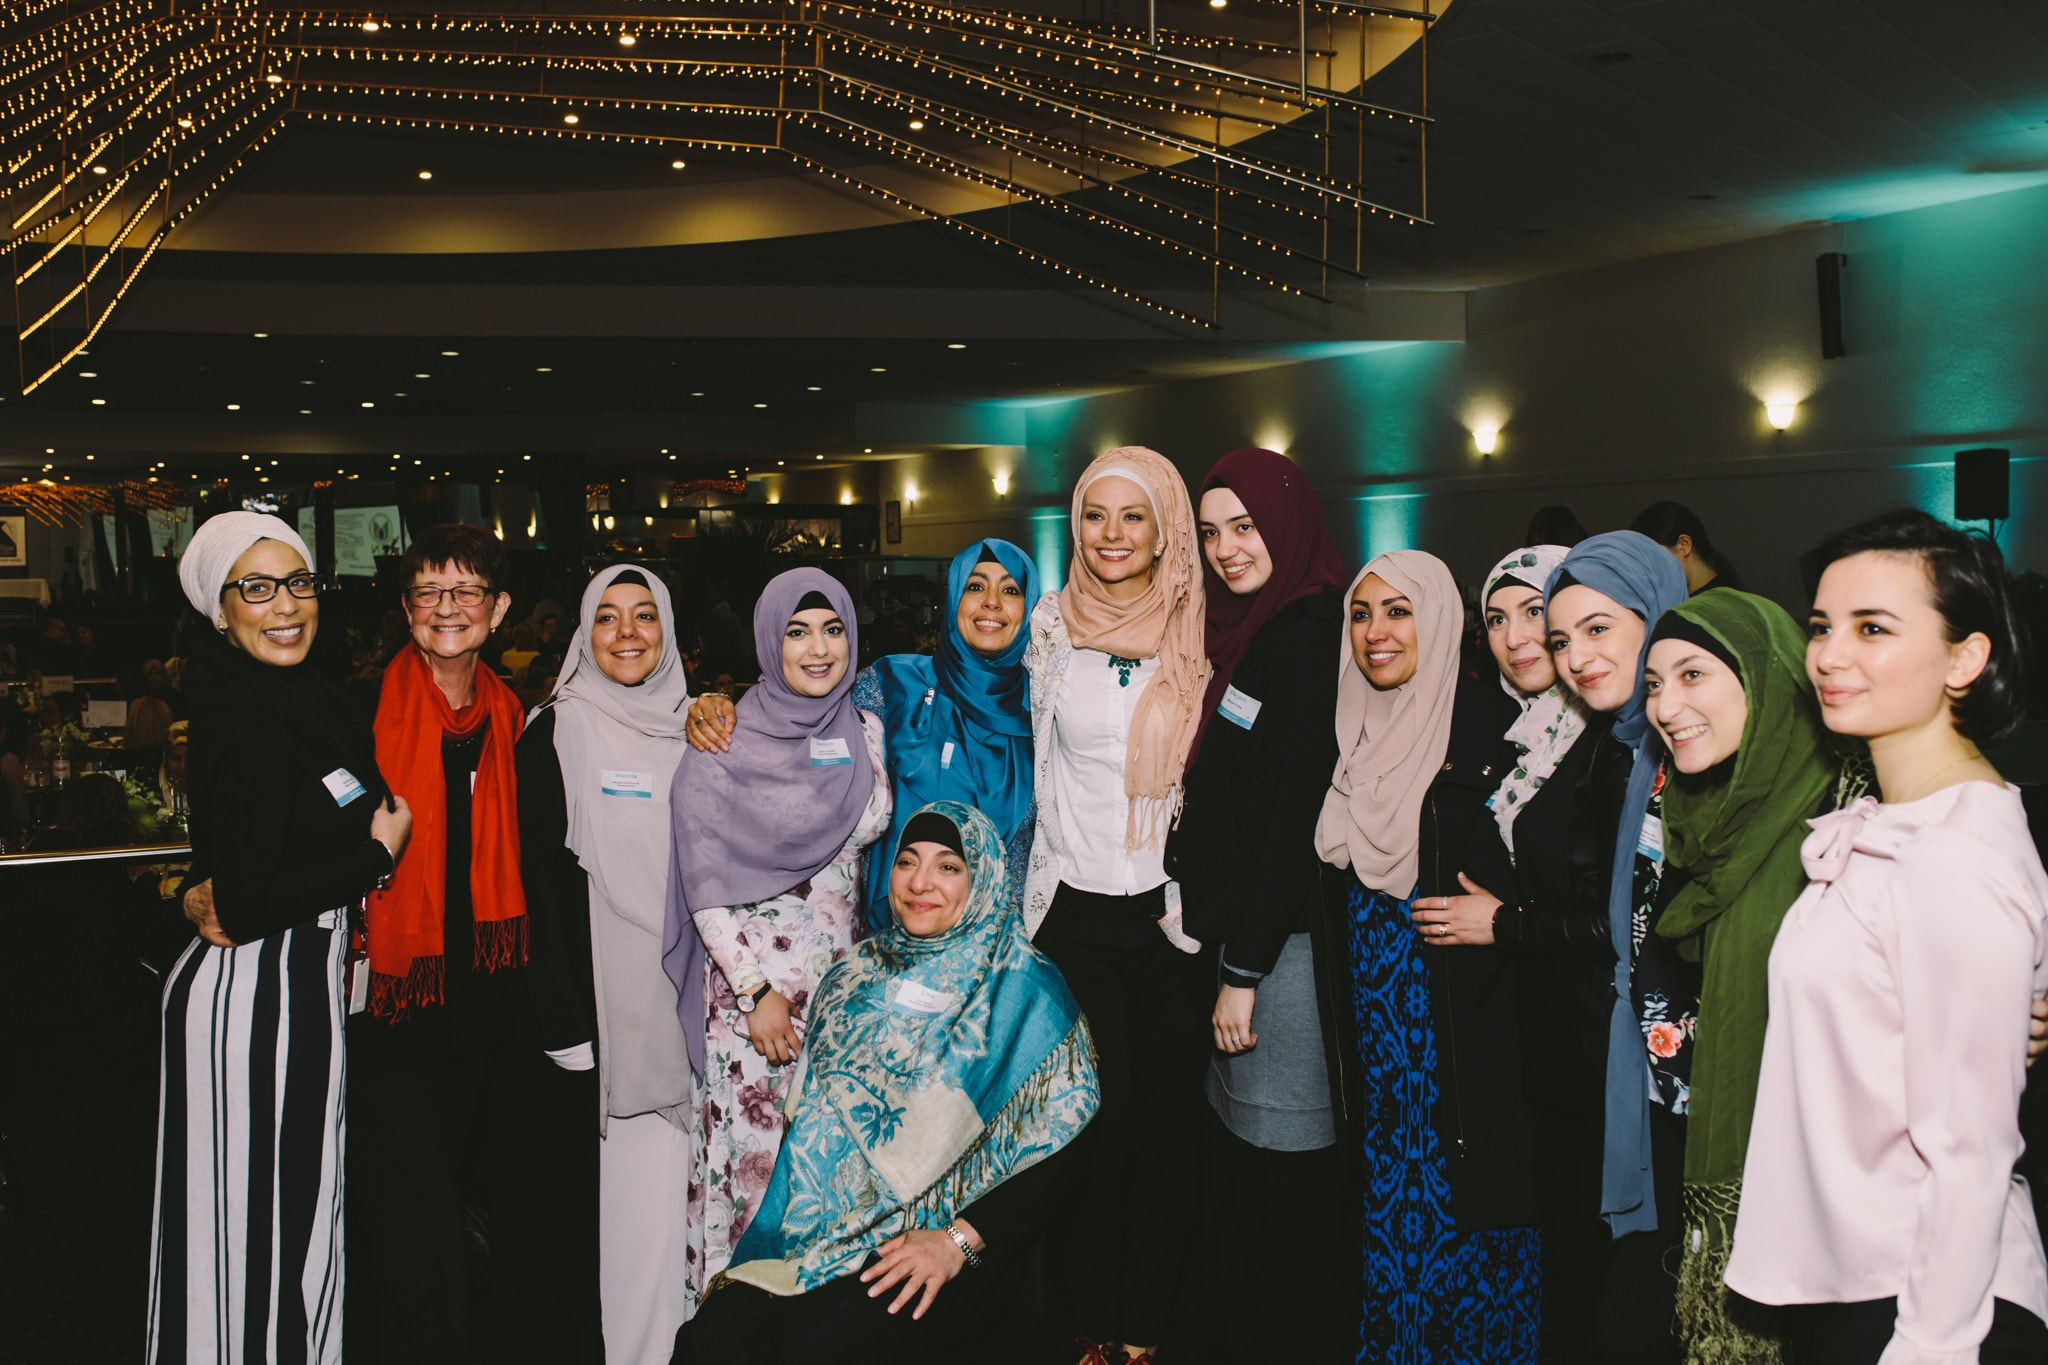 group photo with Dr. Susan Carland